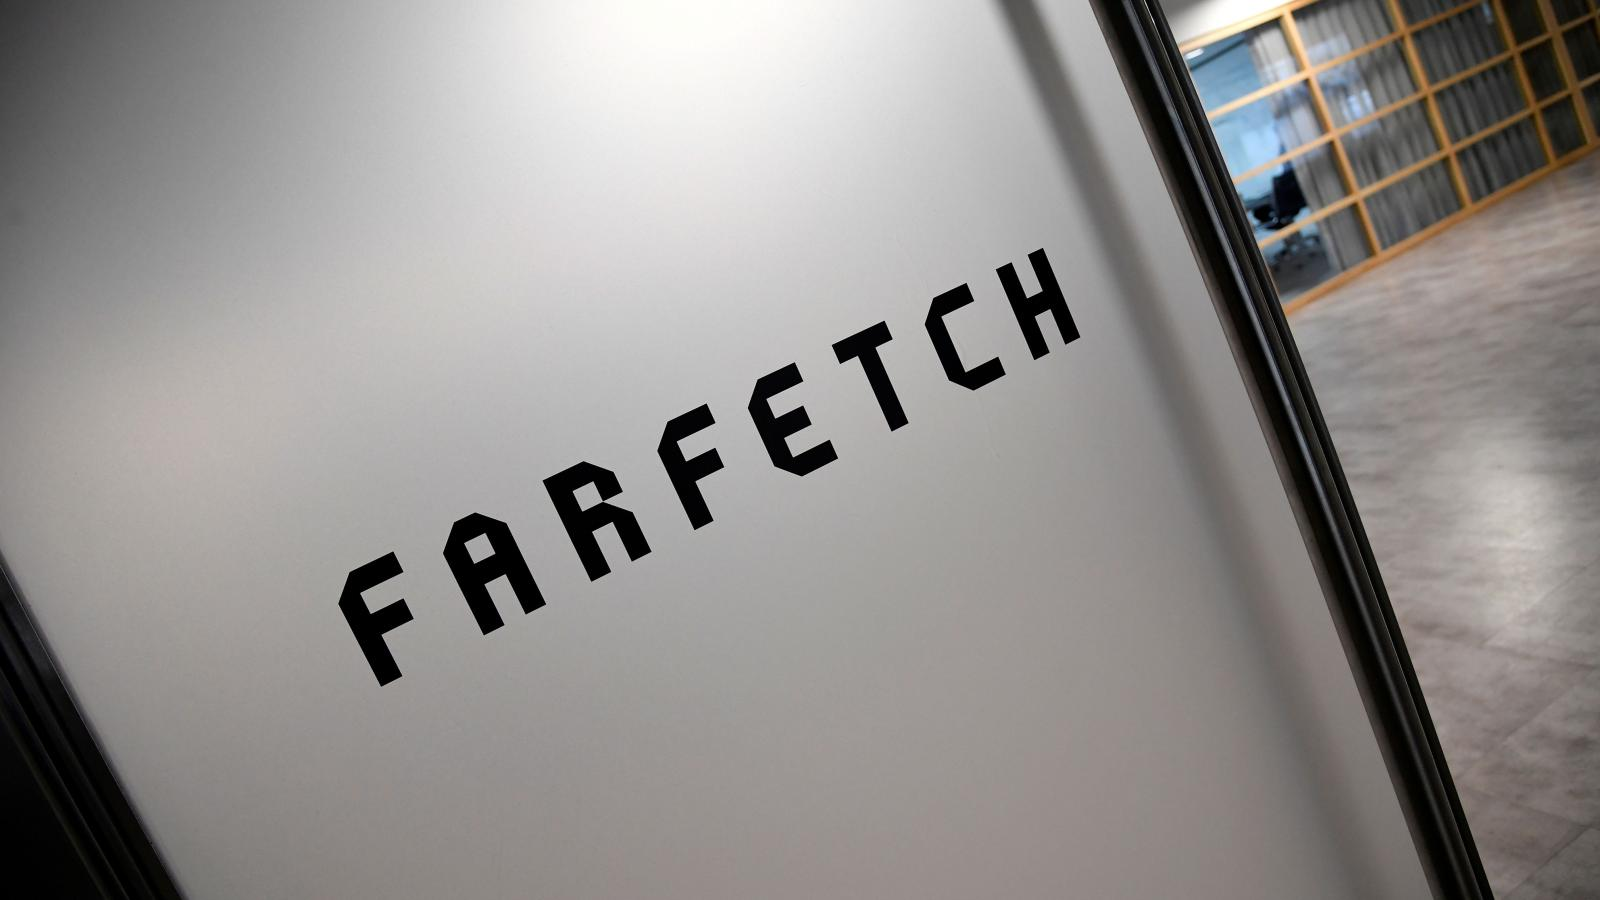 17ae4b5765e Farfetch is succeeding in luxury fashion where Amazon has failed